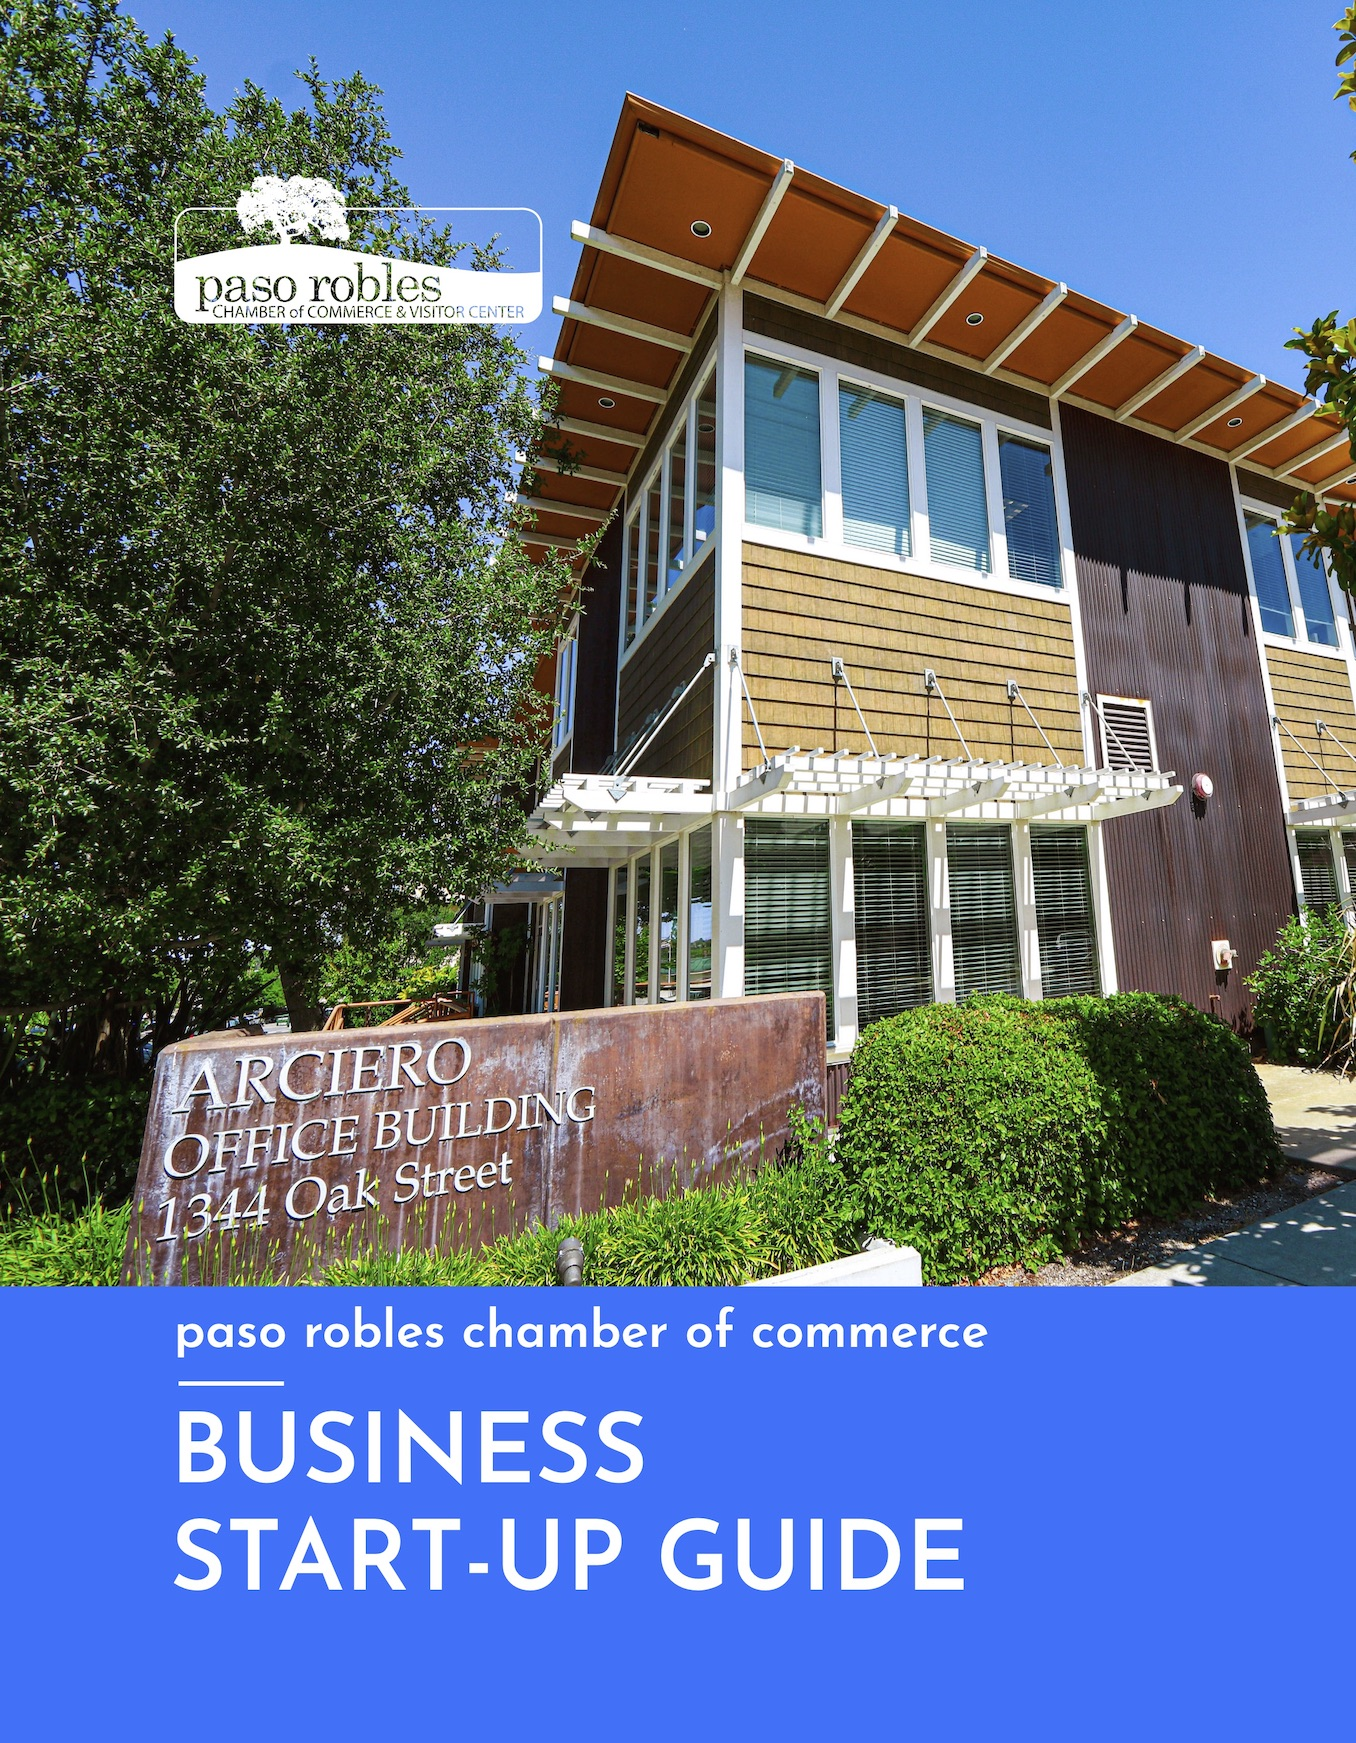 Business Start-Up Guide for paso robles businesses